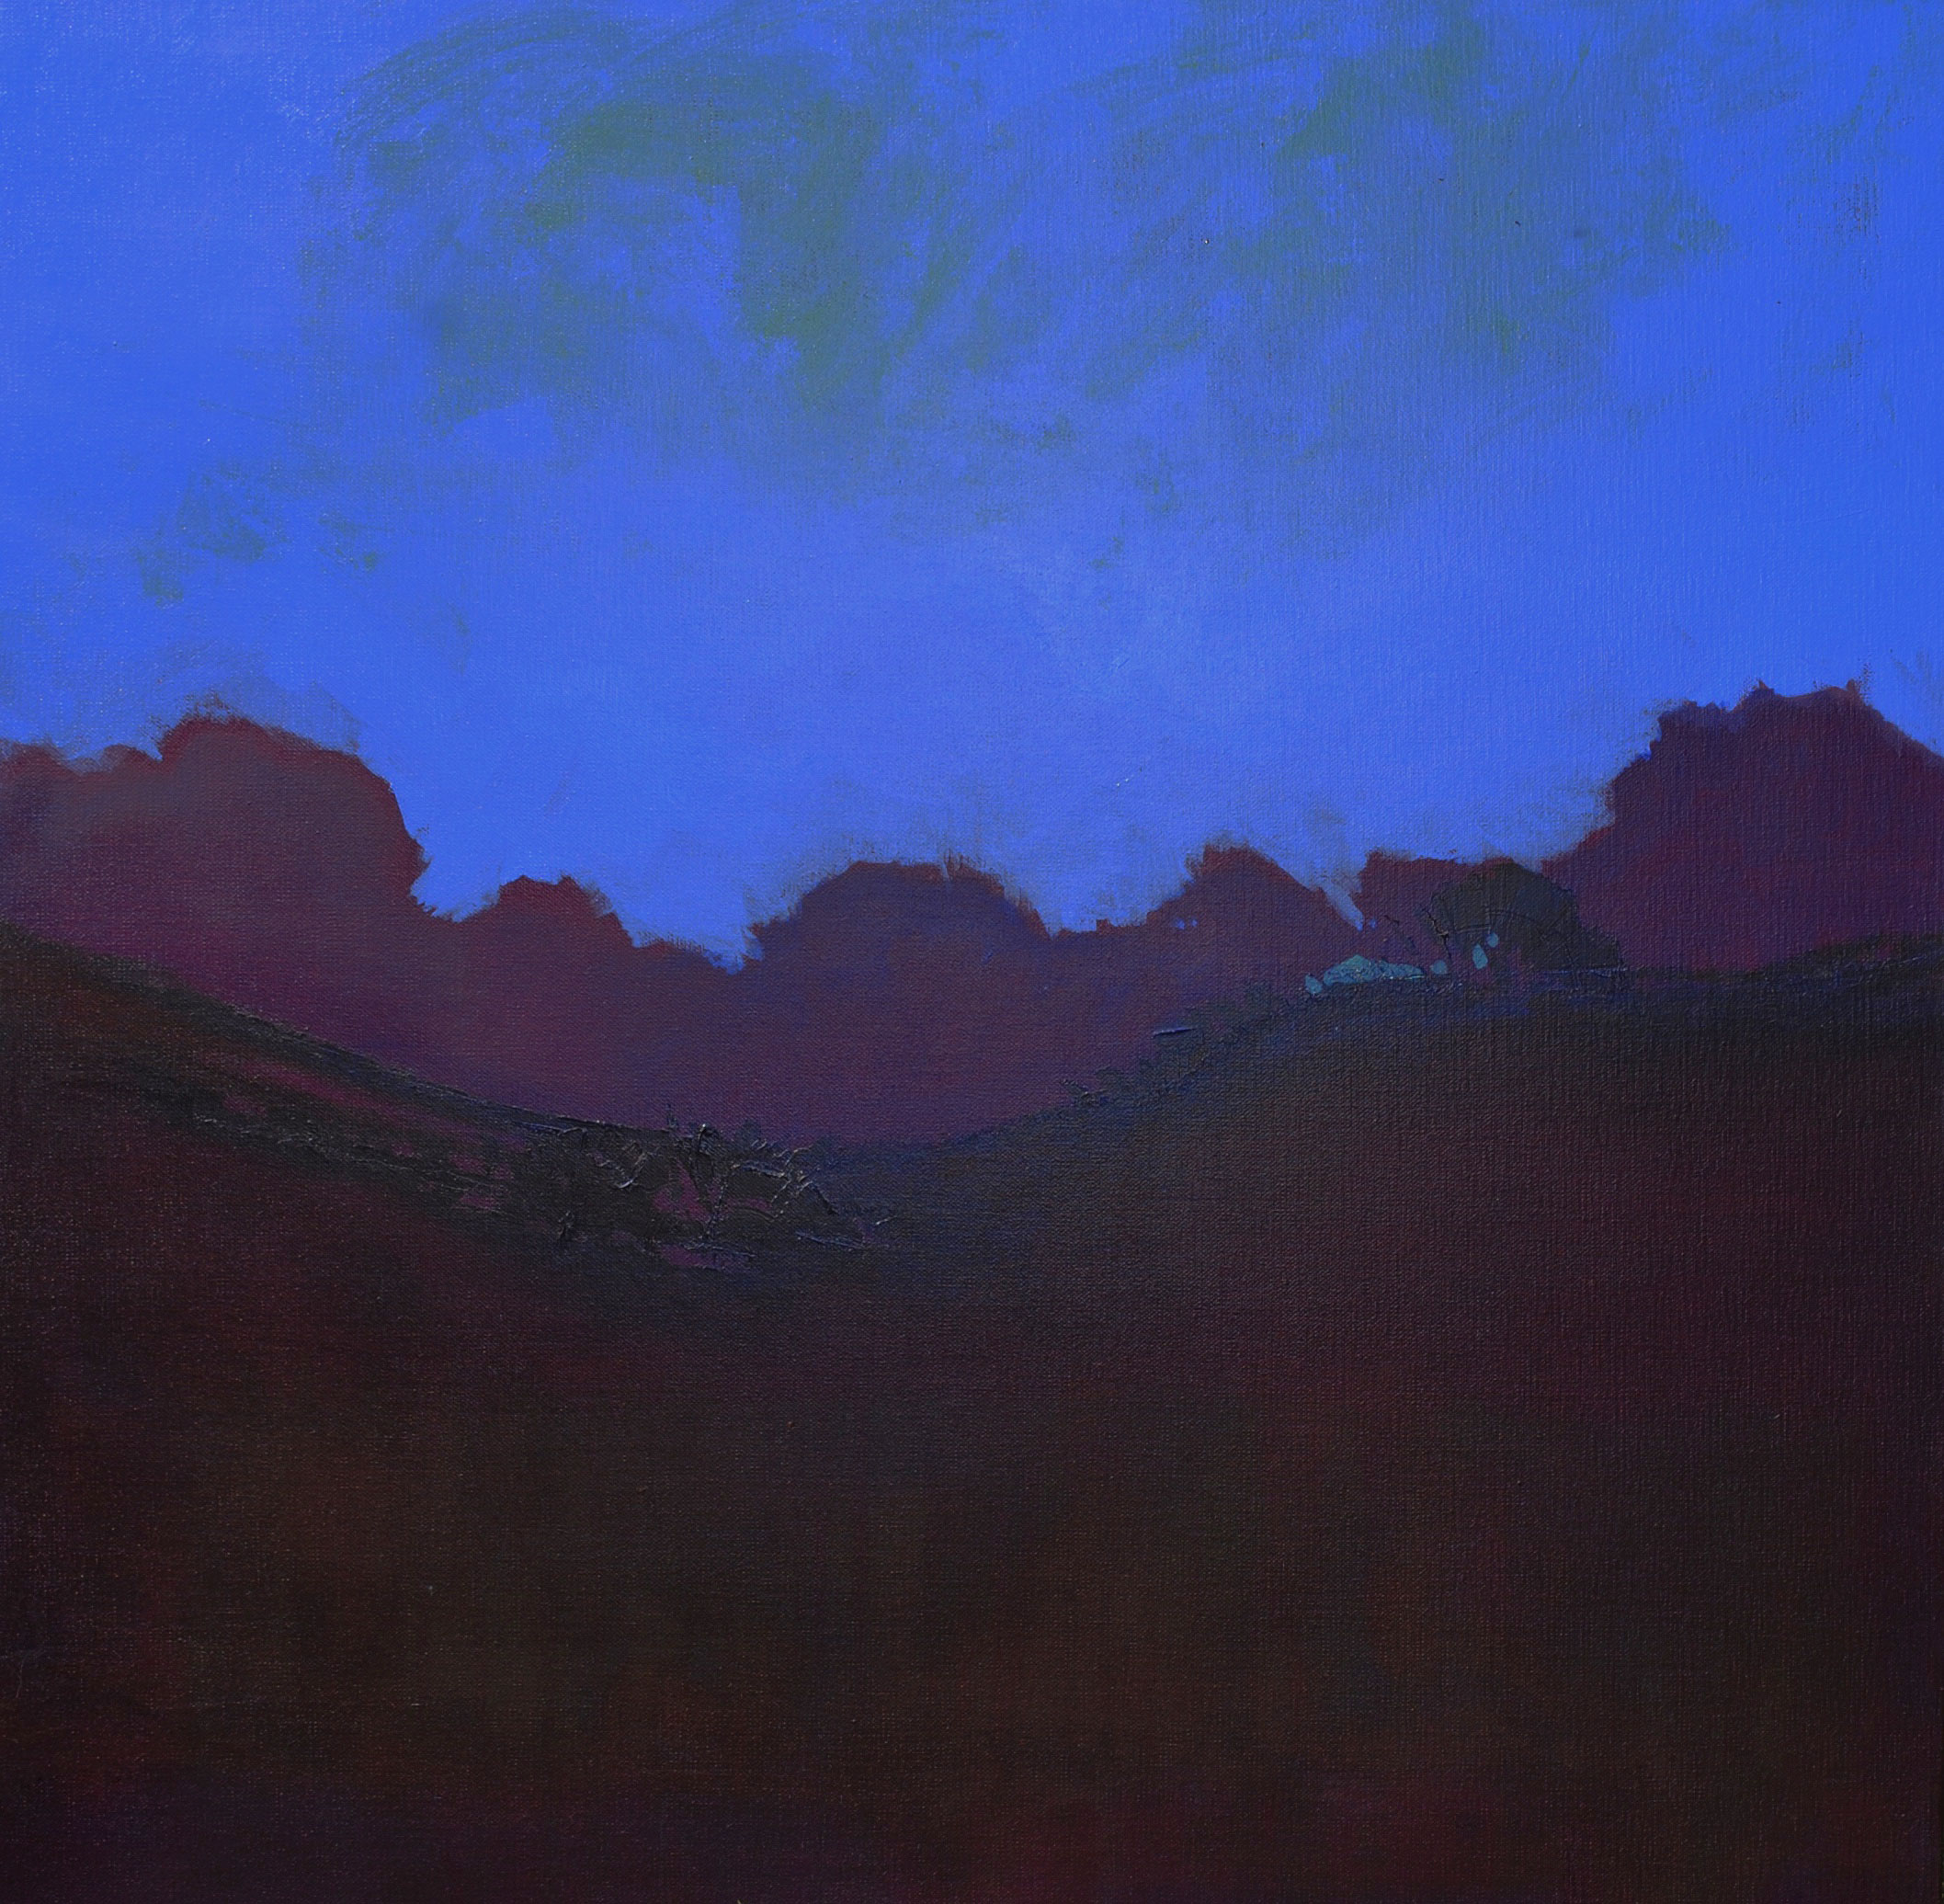 Before Sunrise  – Oil on canvas – 31 x 31 inches / 80 x 80 cm